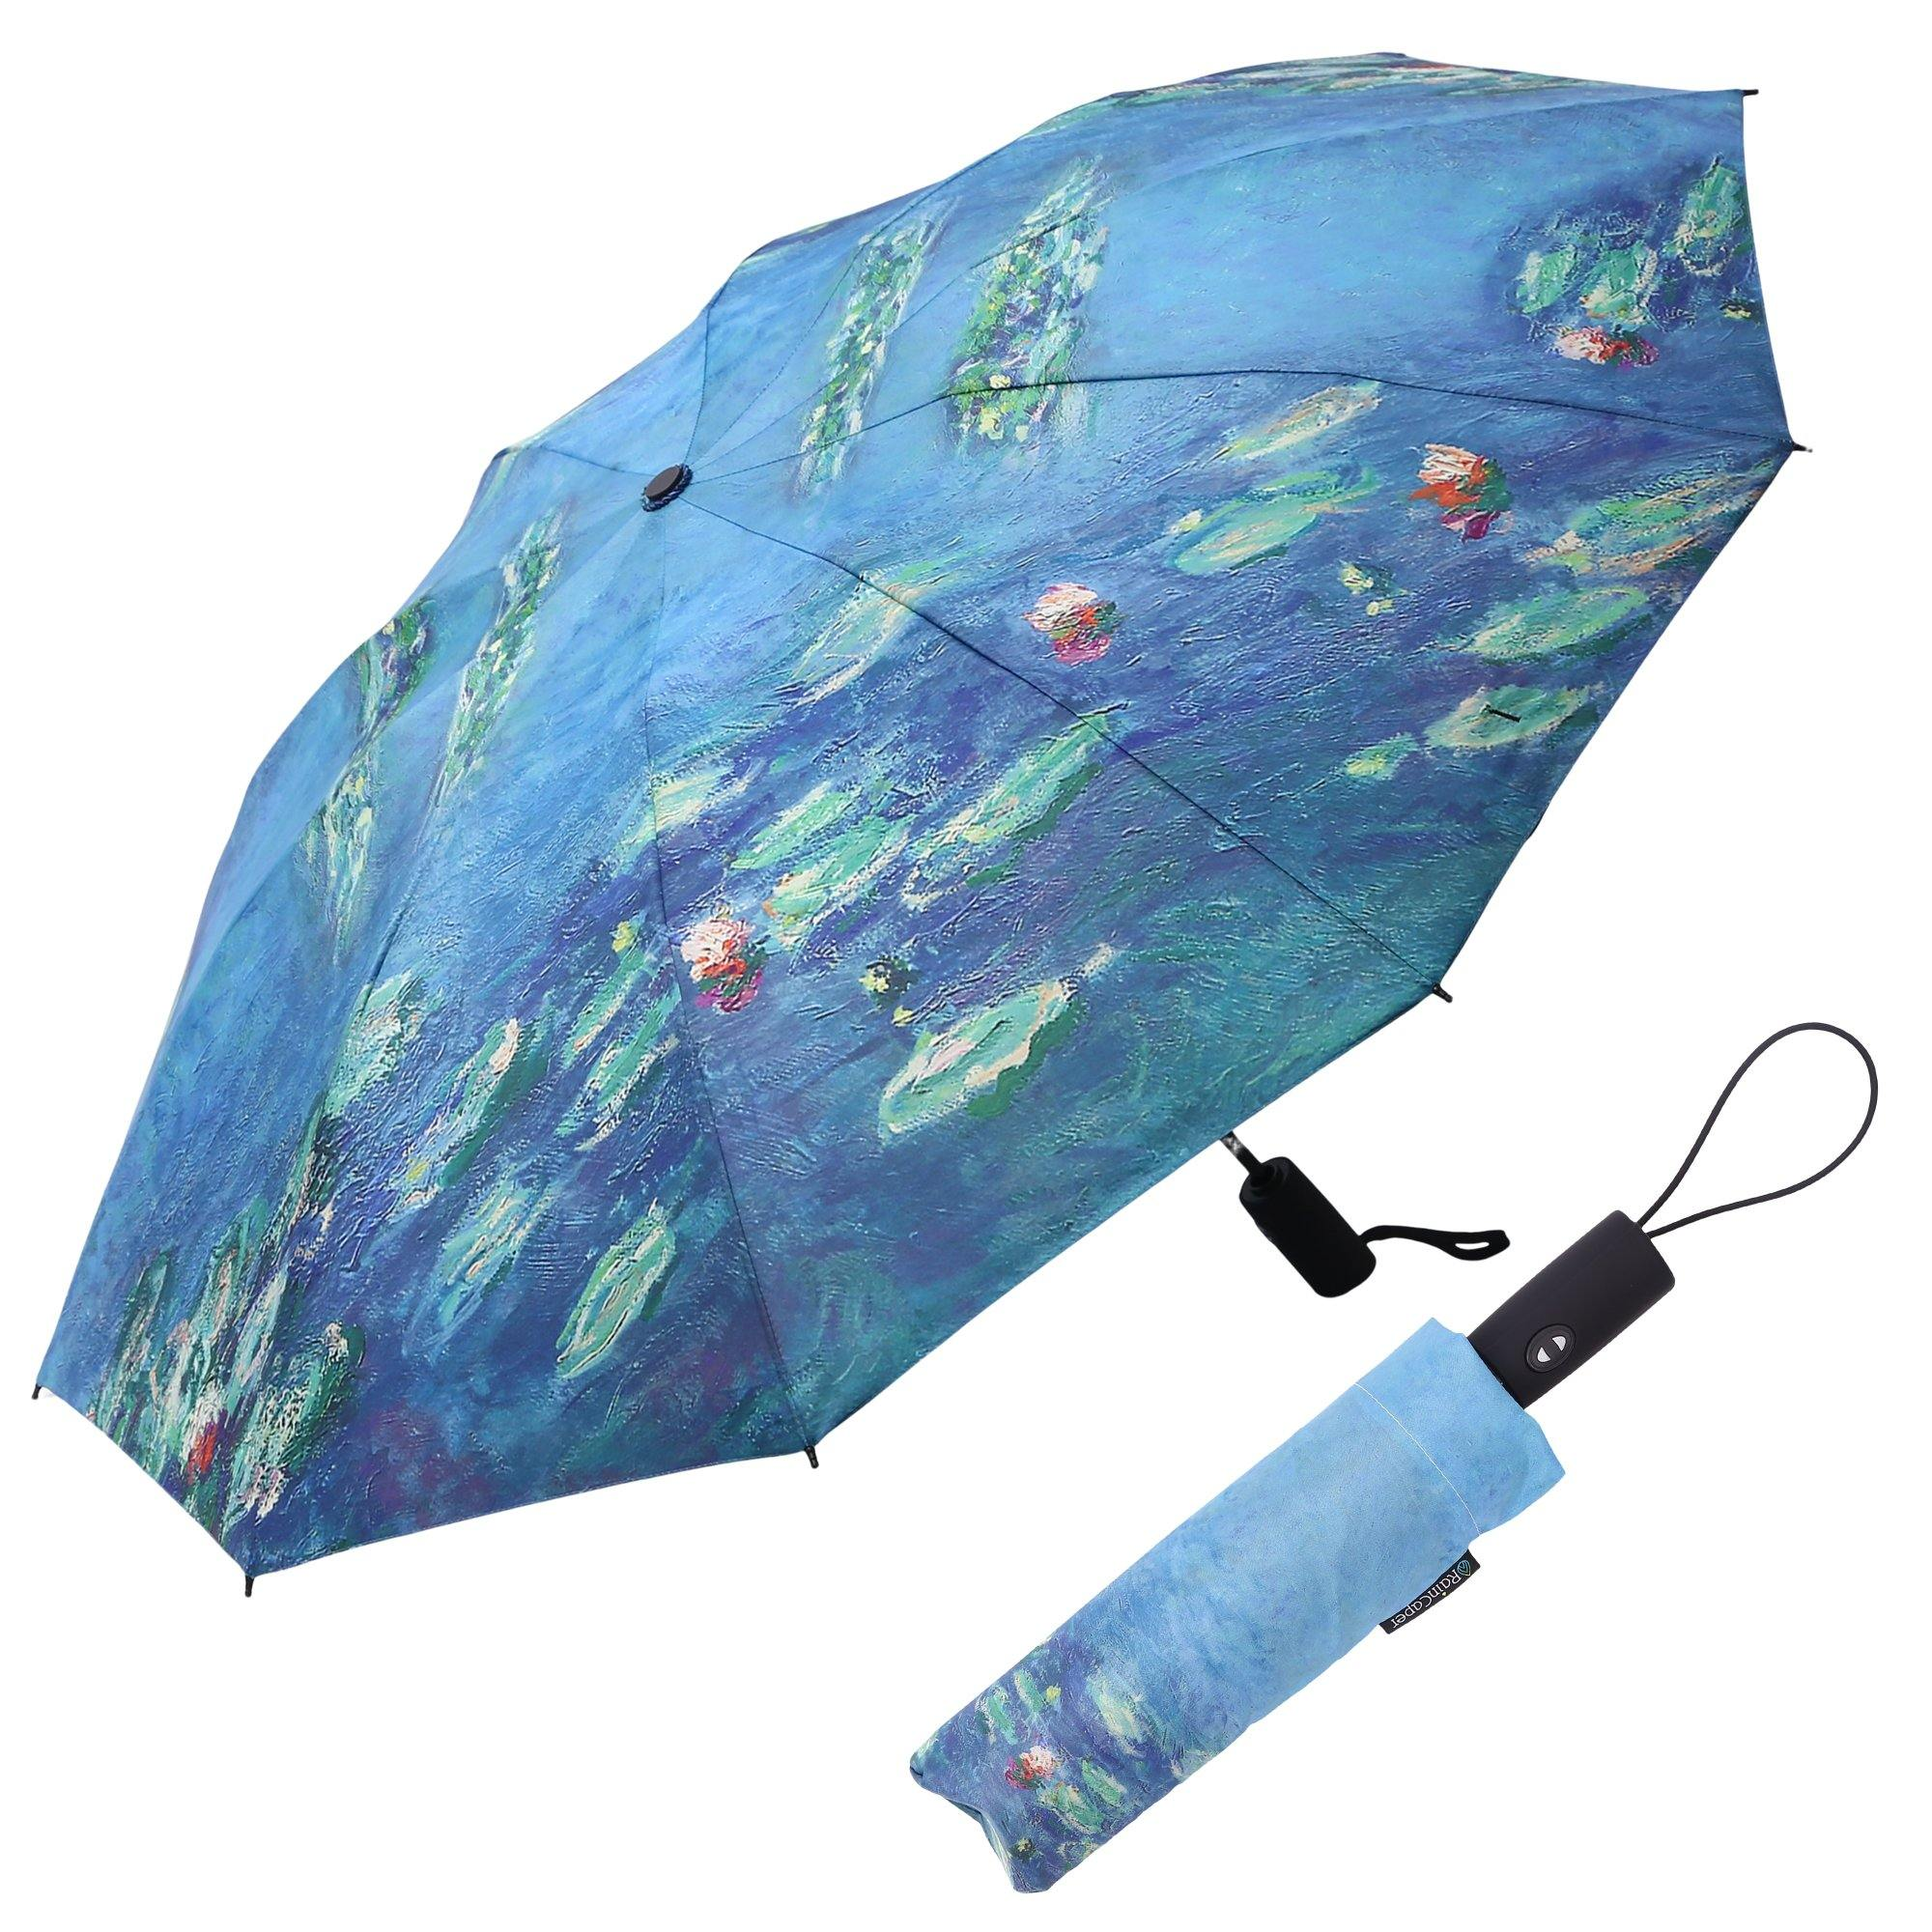 Image of a RainCaper Monet Water Lilies folded traveling umbrella shown both open and closed